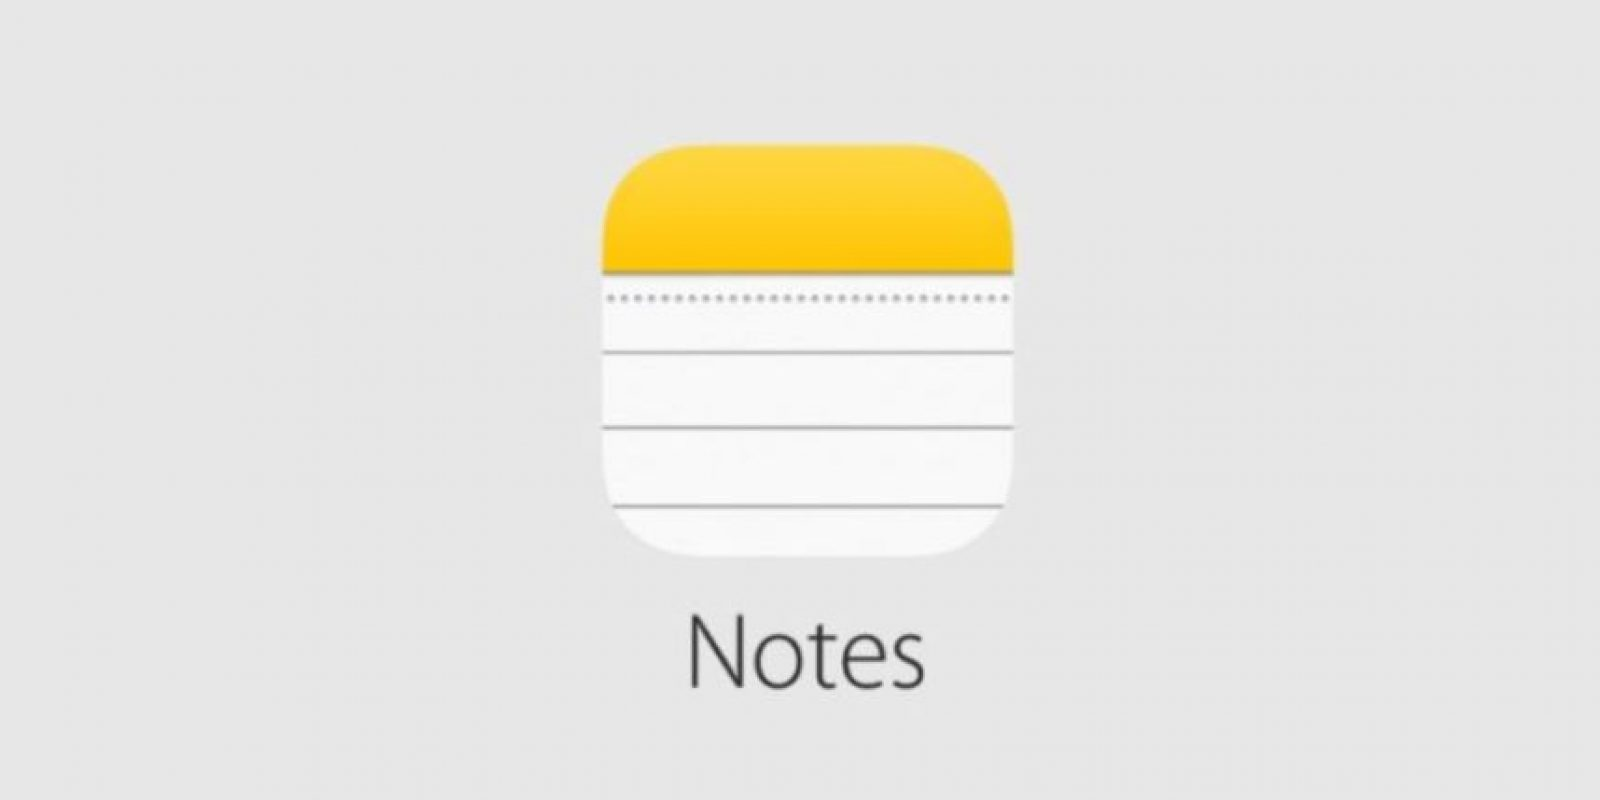 O Notes. Foto: Apple